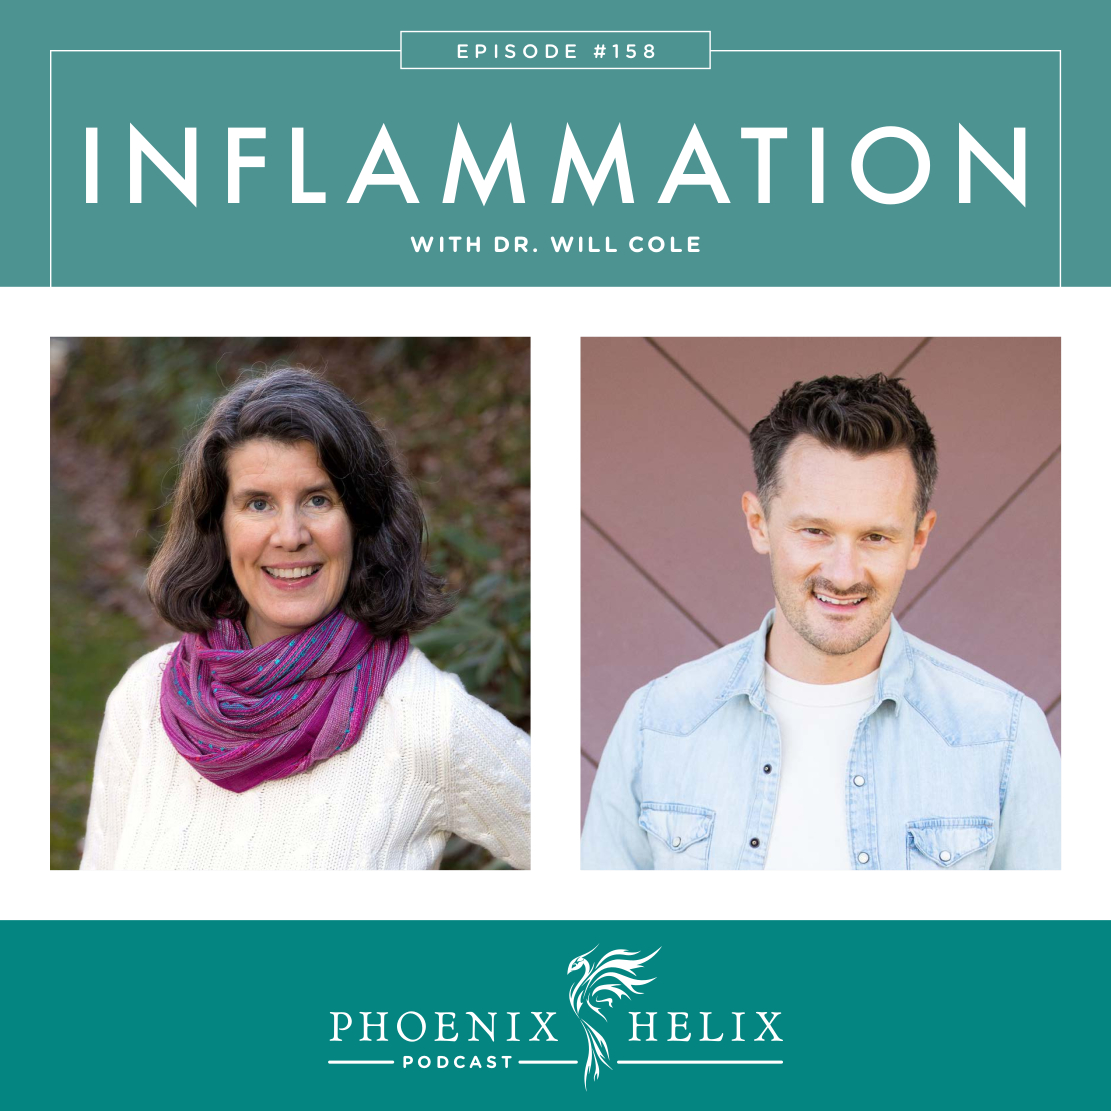 Inflammation with Dr. Will Cole | Phoenix Helix Podcast